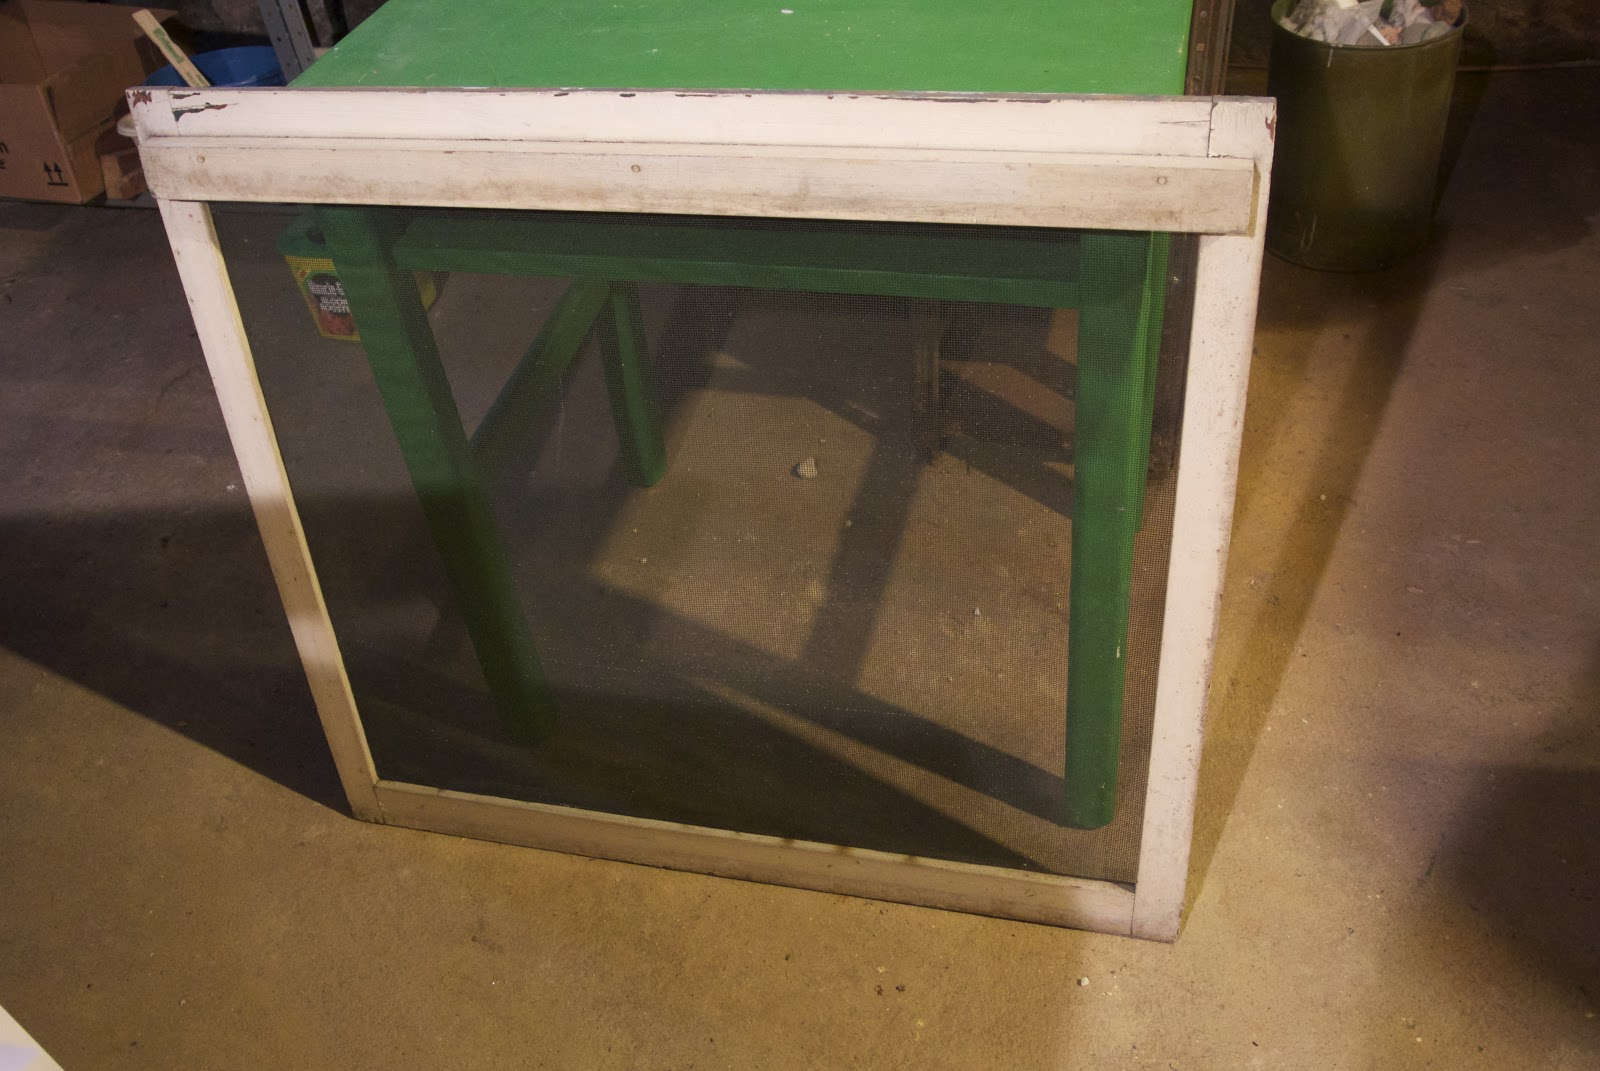 The General Construction Of This Frame Is Slightly Simpler Than One I M Making Because It Does Not Have Mitered Corners Or A Rabbeted Inset Where